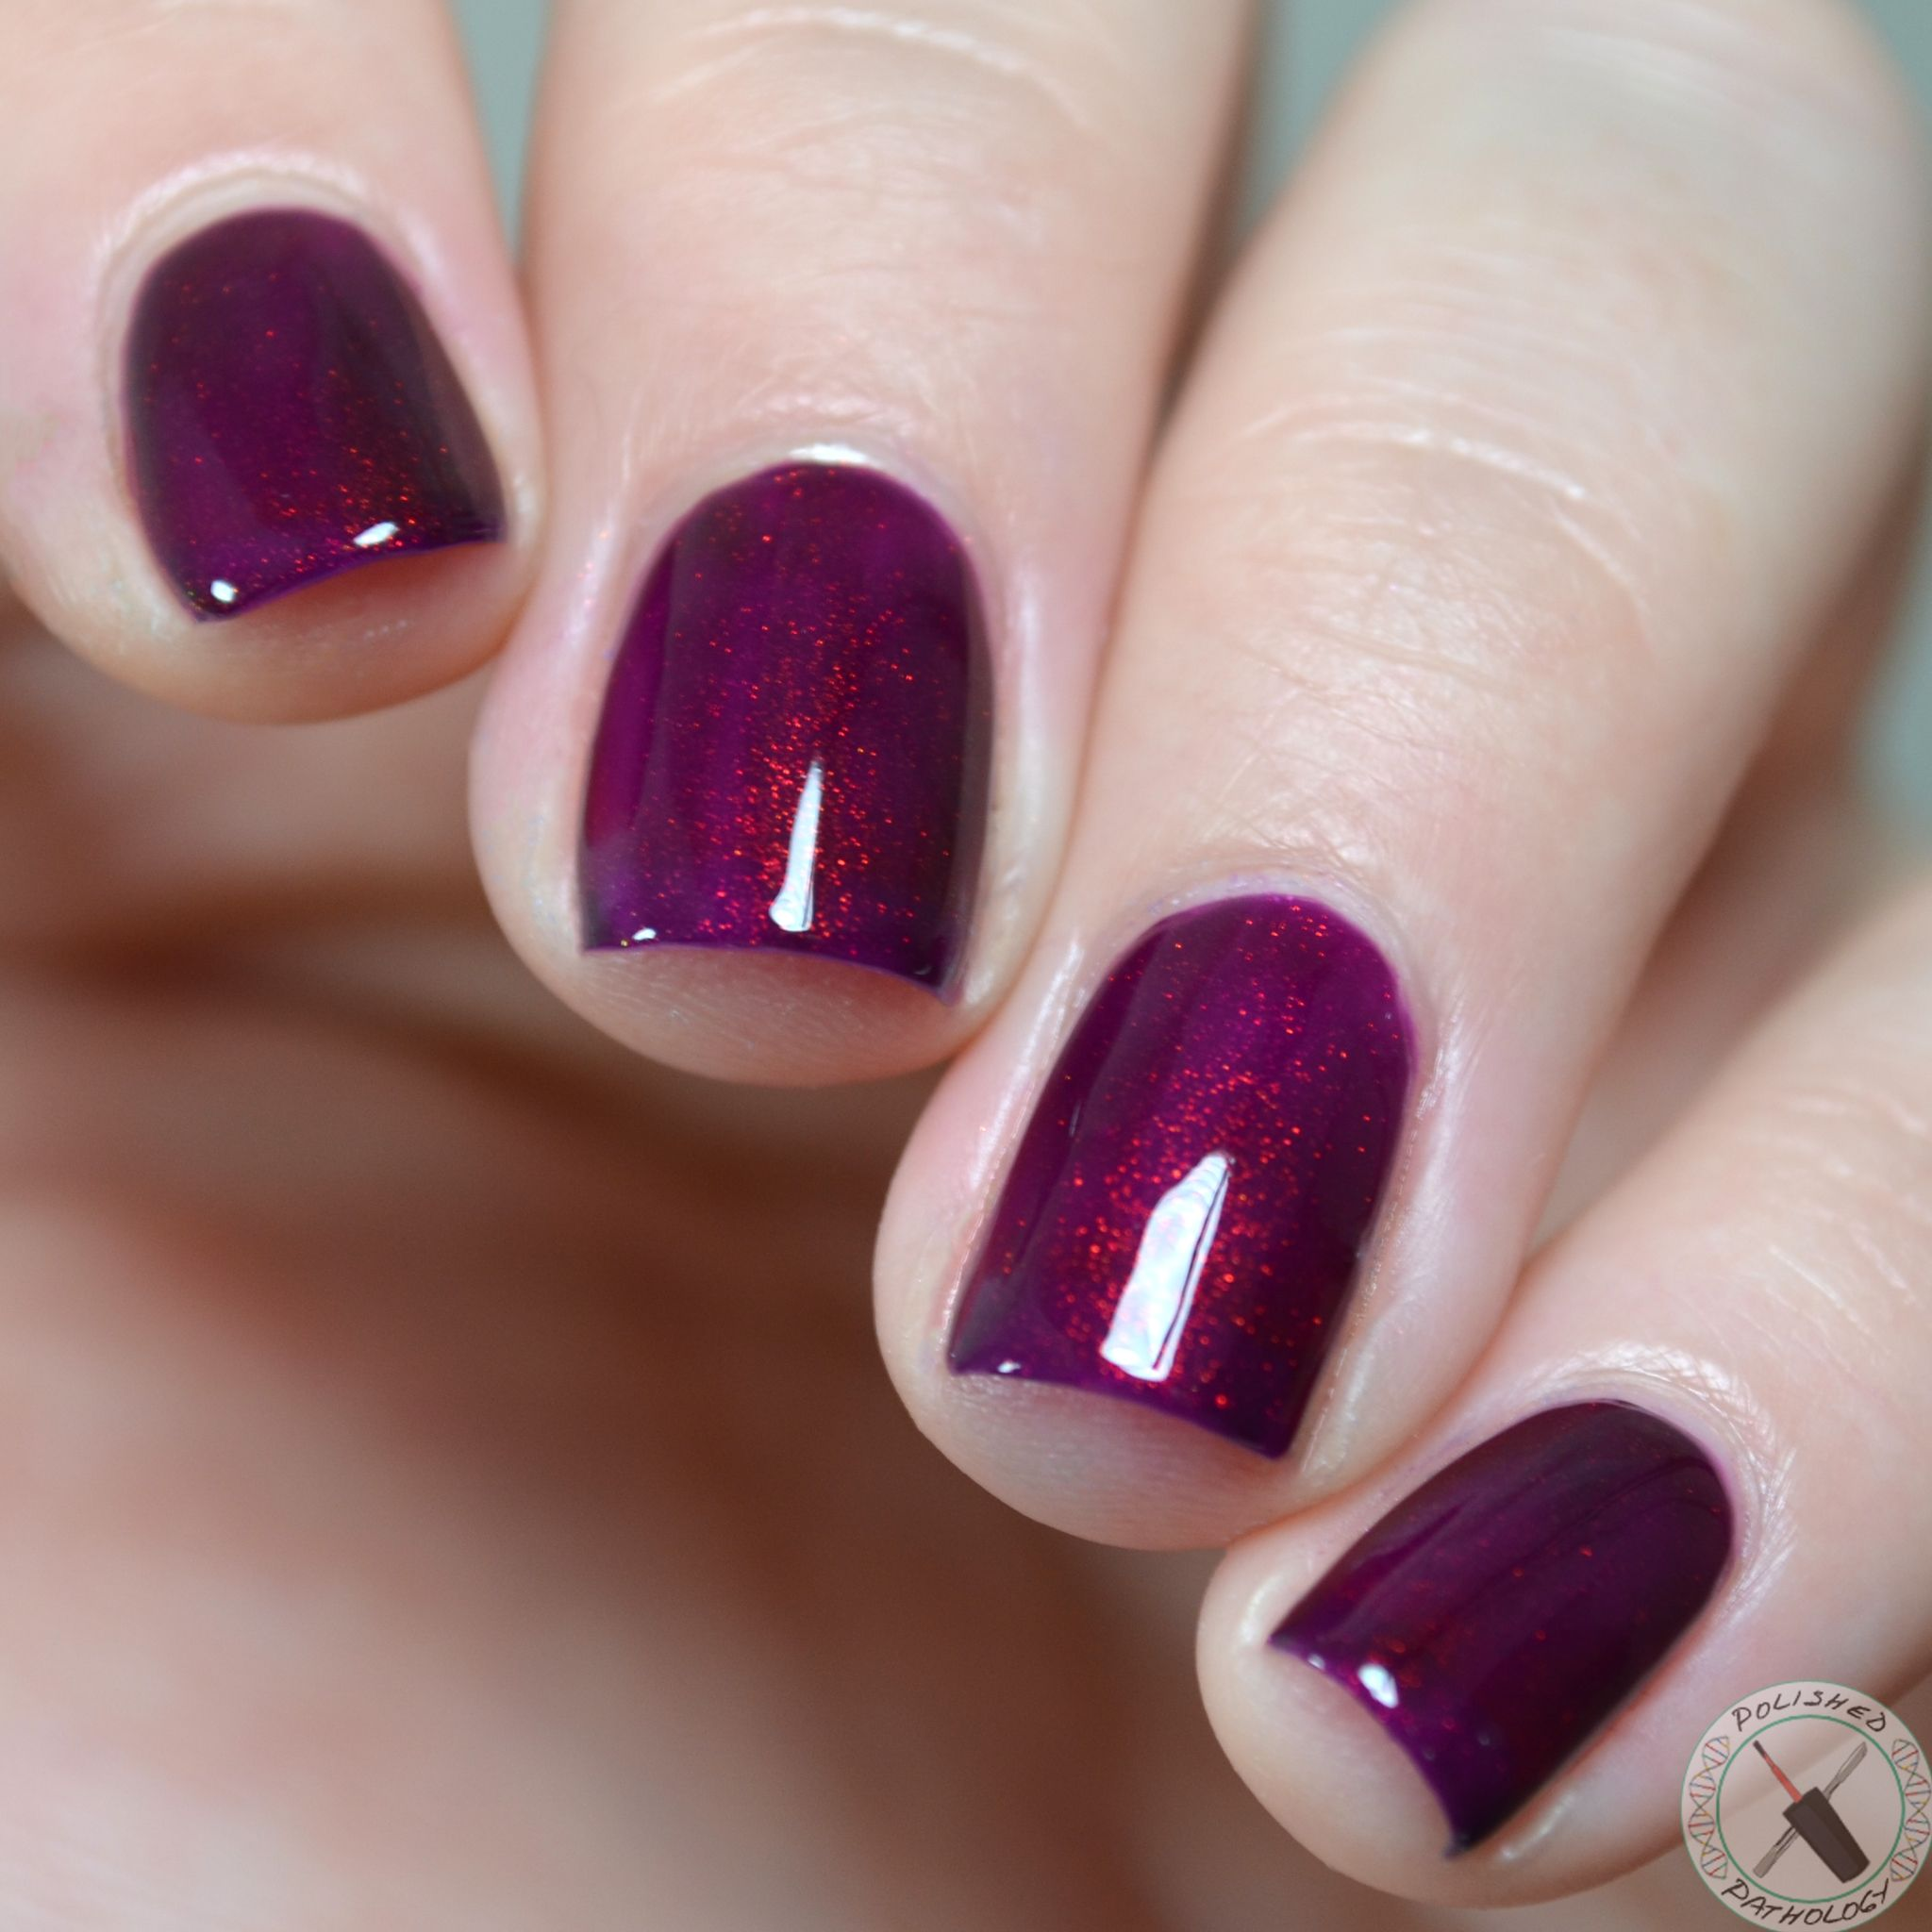 KBShimmer So Jelly - Deep fuchsia jelly with color shifting shimmer ...